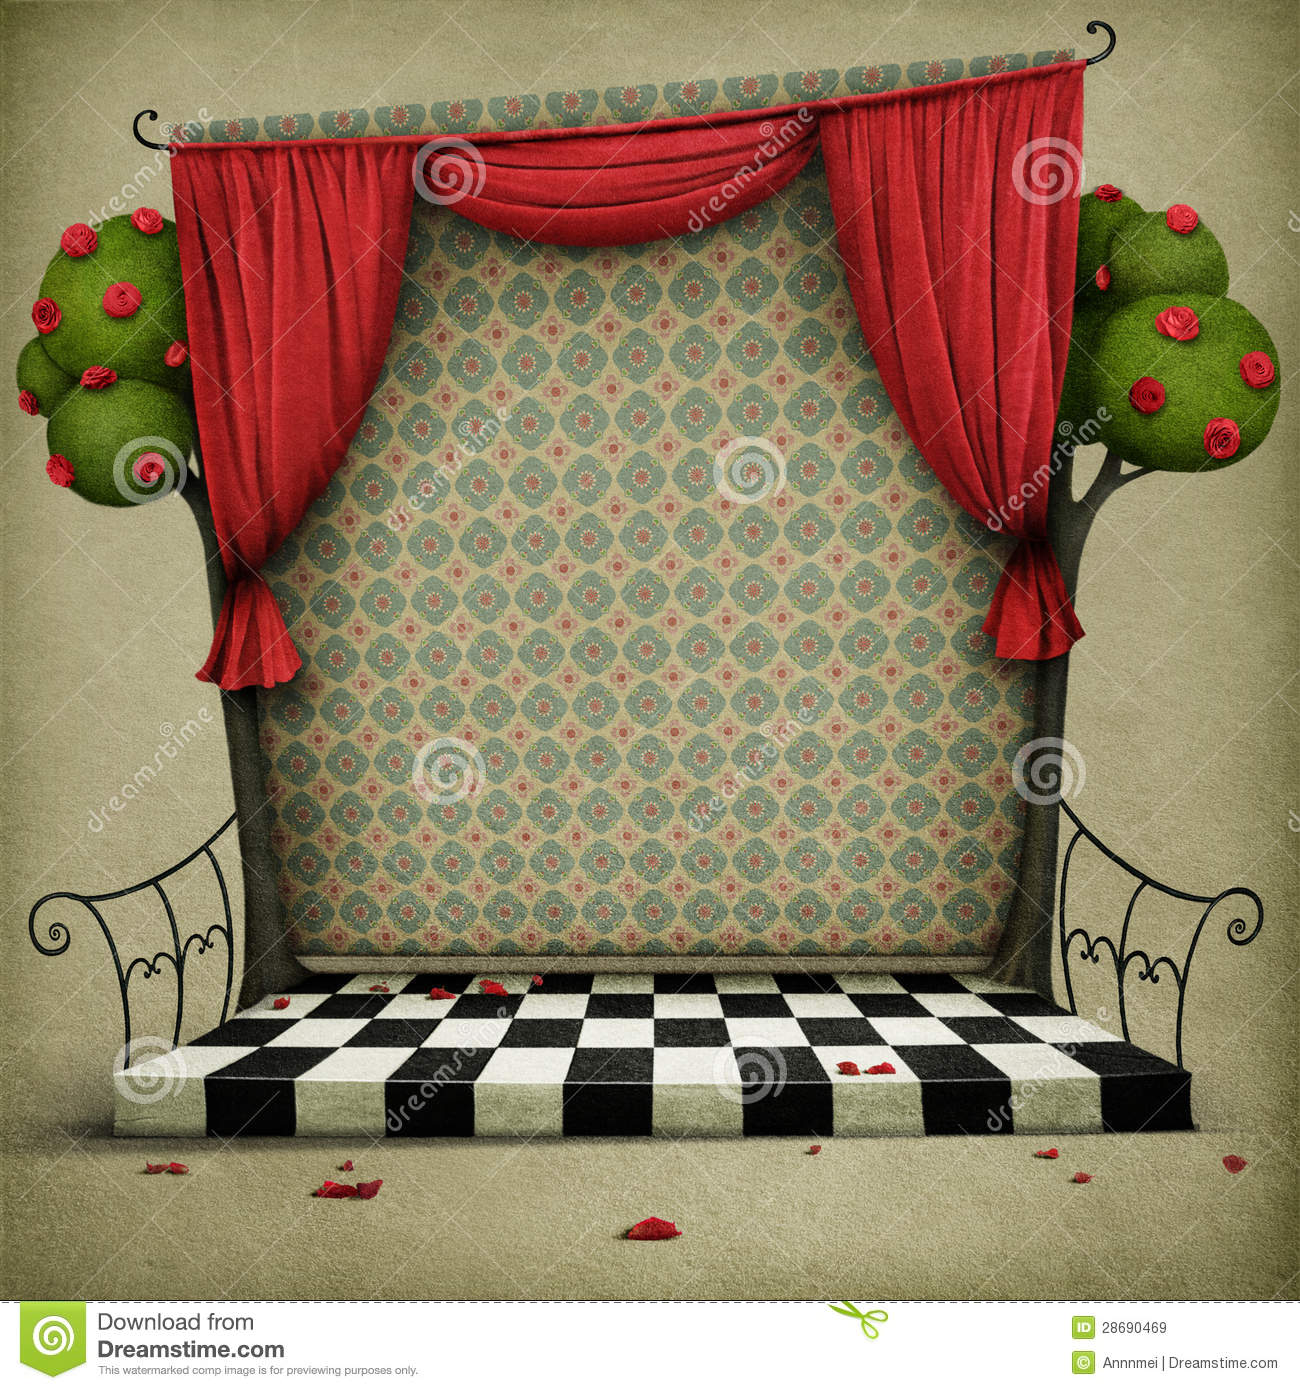 Background with elements of fairy tale Alice in Wonderland